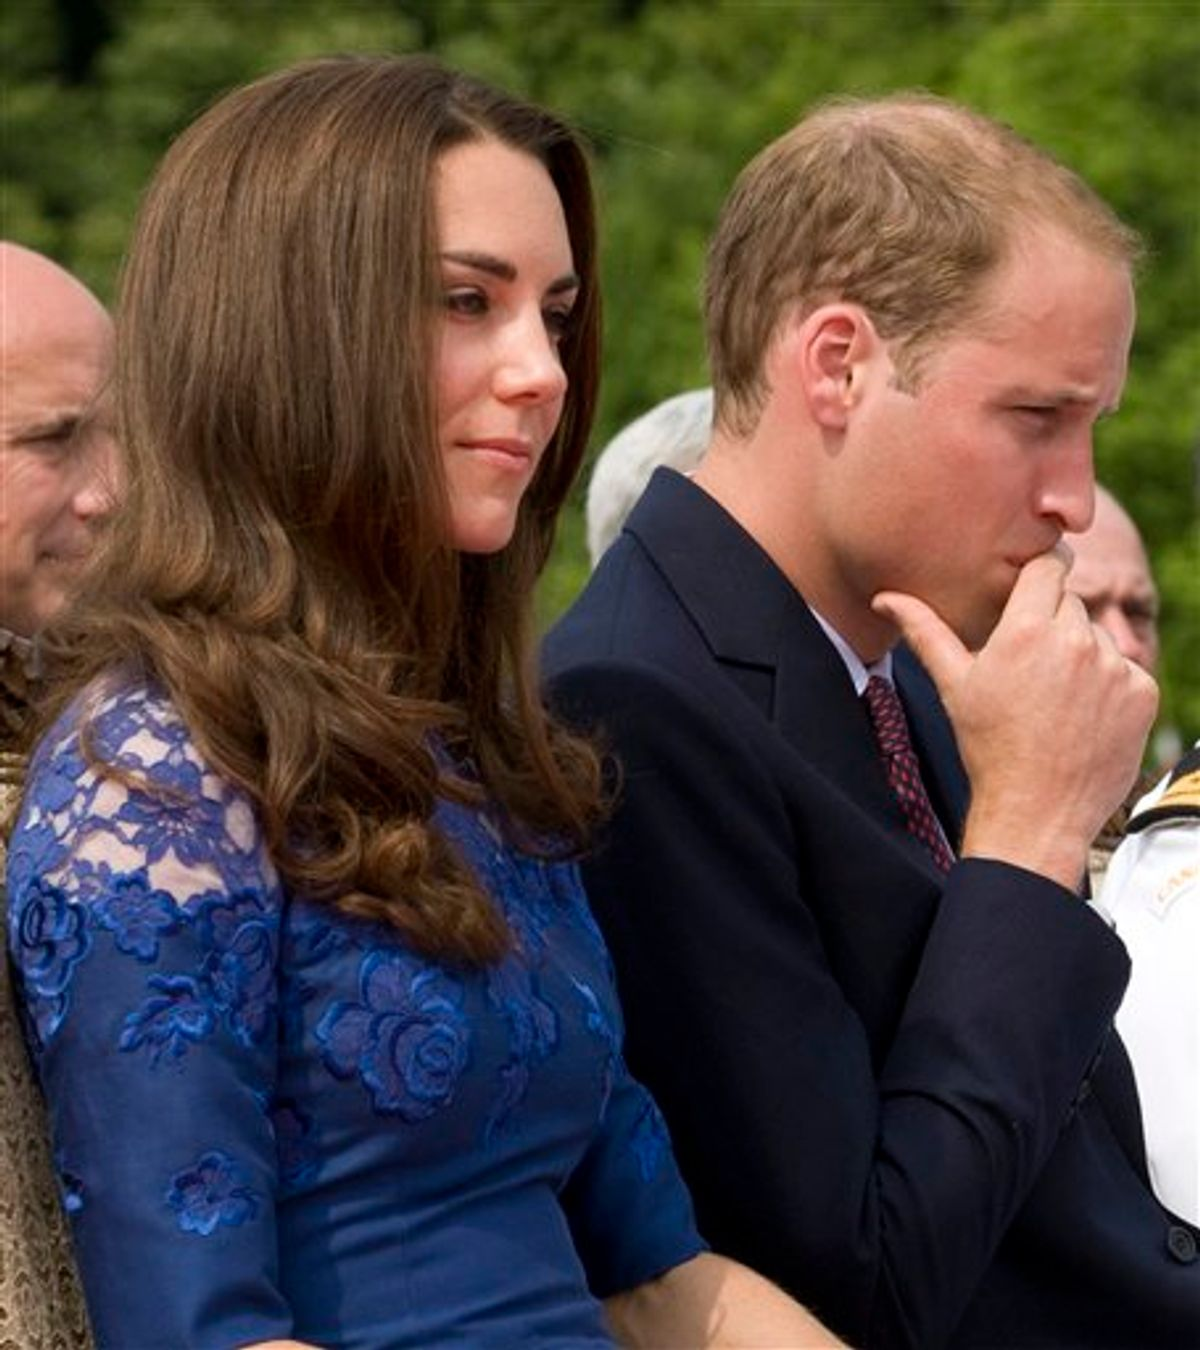 Prince William and Kate, the Duke and Duchess of Cambridge, take part in a religious ceremony on HMCS Montreal in Quebec City , Sunday July 3, 2011. (AP Photo/The Canadian Press, Adrian Wyld) (AP)